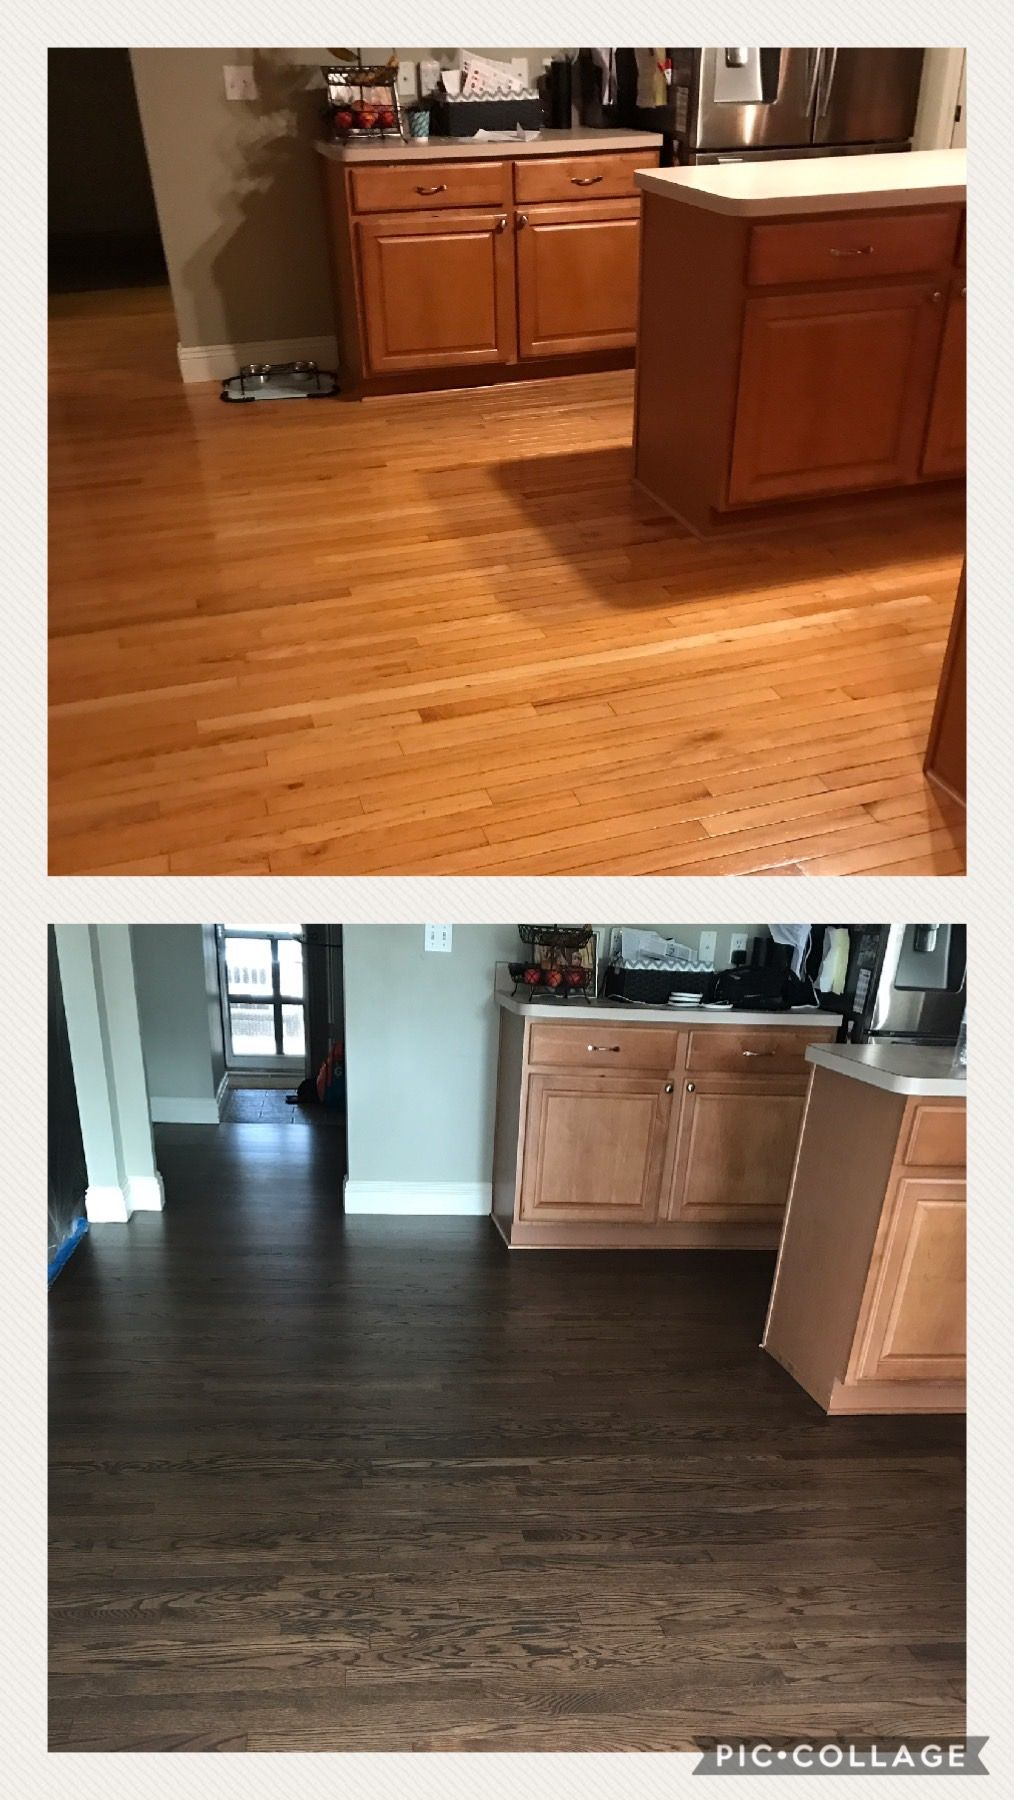 Builder Grade Red Oak Wood Floors Refinished With Espresso And Grey With A Satin Finish Red Oak Wood Floors Oak Wood Floors Red Oak Wood